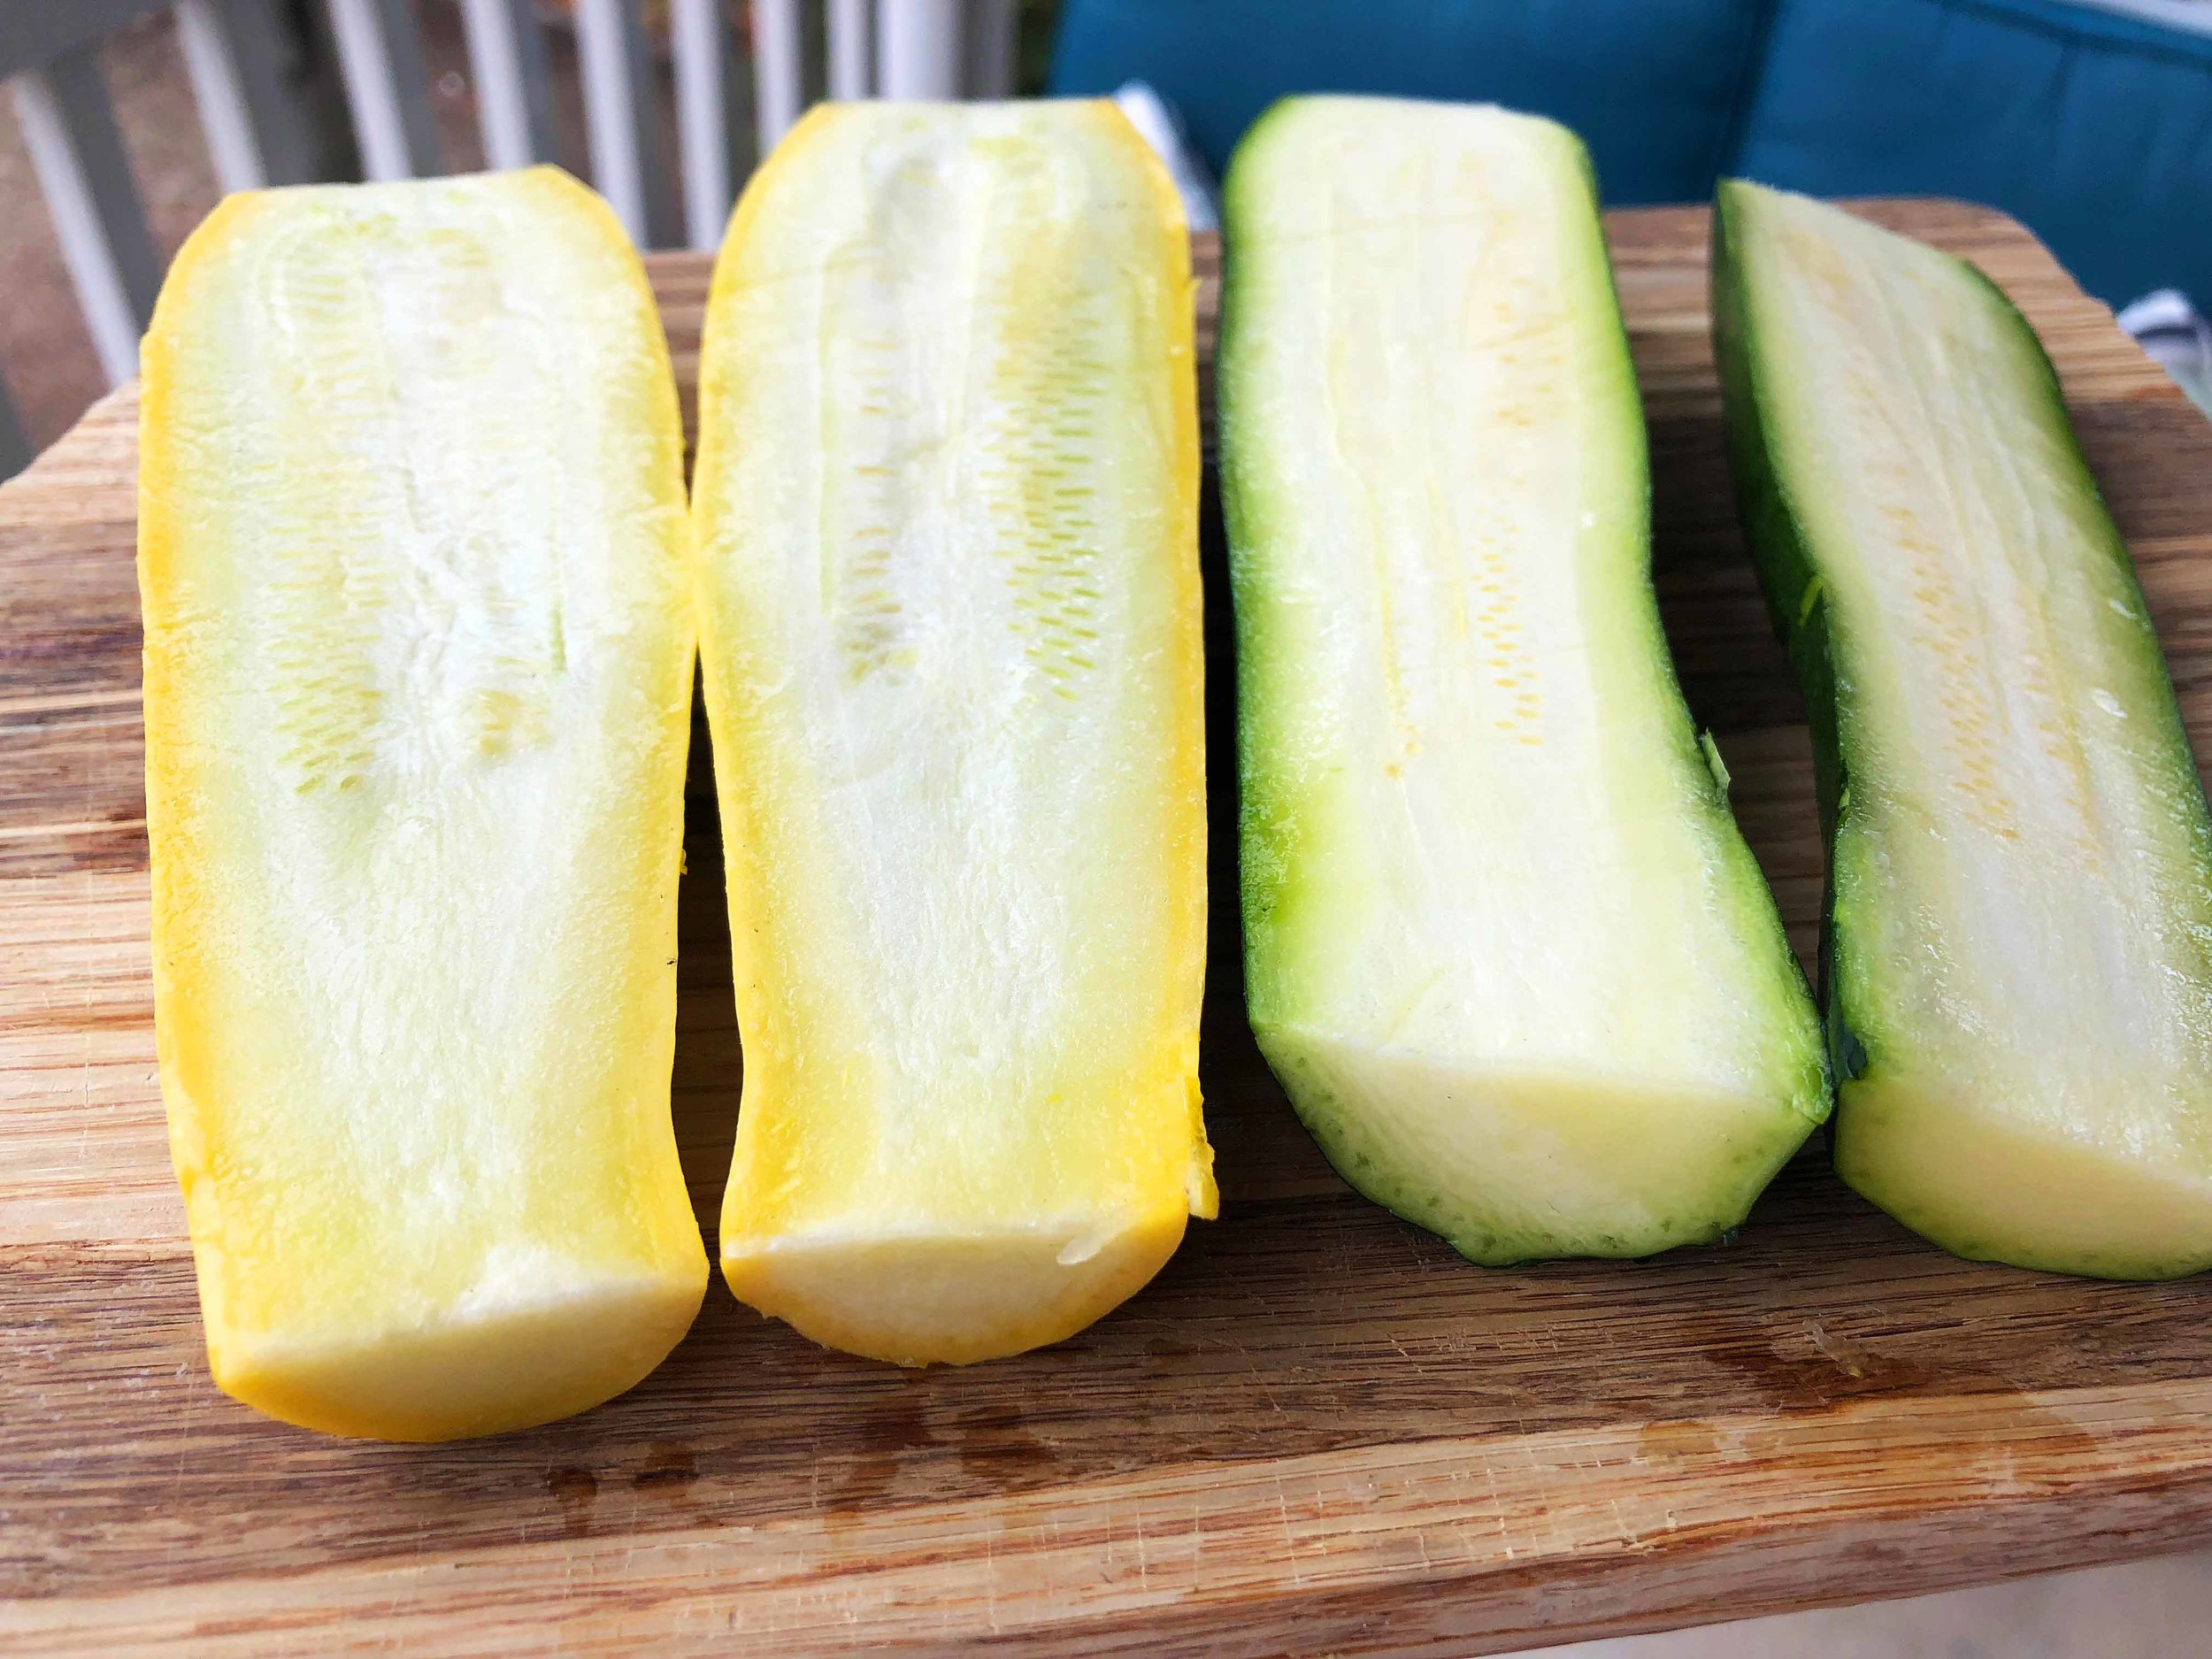 I handled the squash and zucchini similar to the corn. Rub down with oil, salt and pepper and roast in the oven for about 30-40 minutes. Flipping half way through.